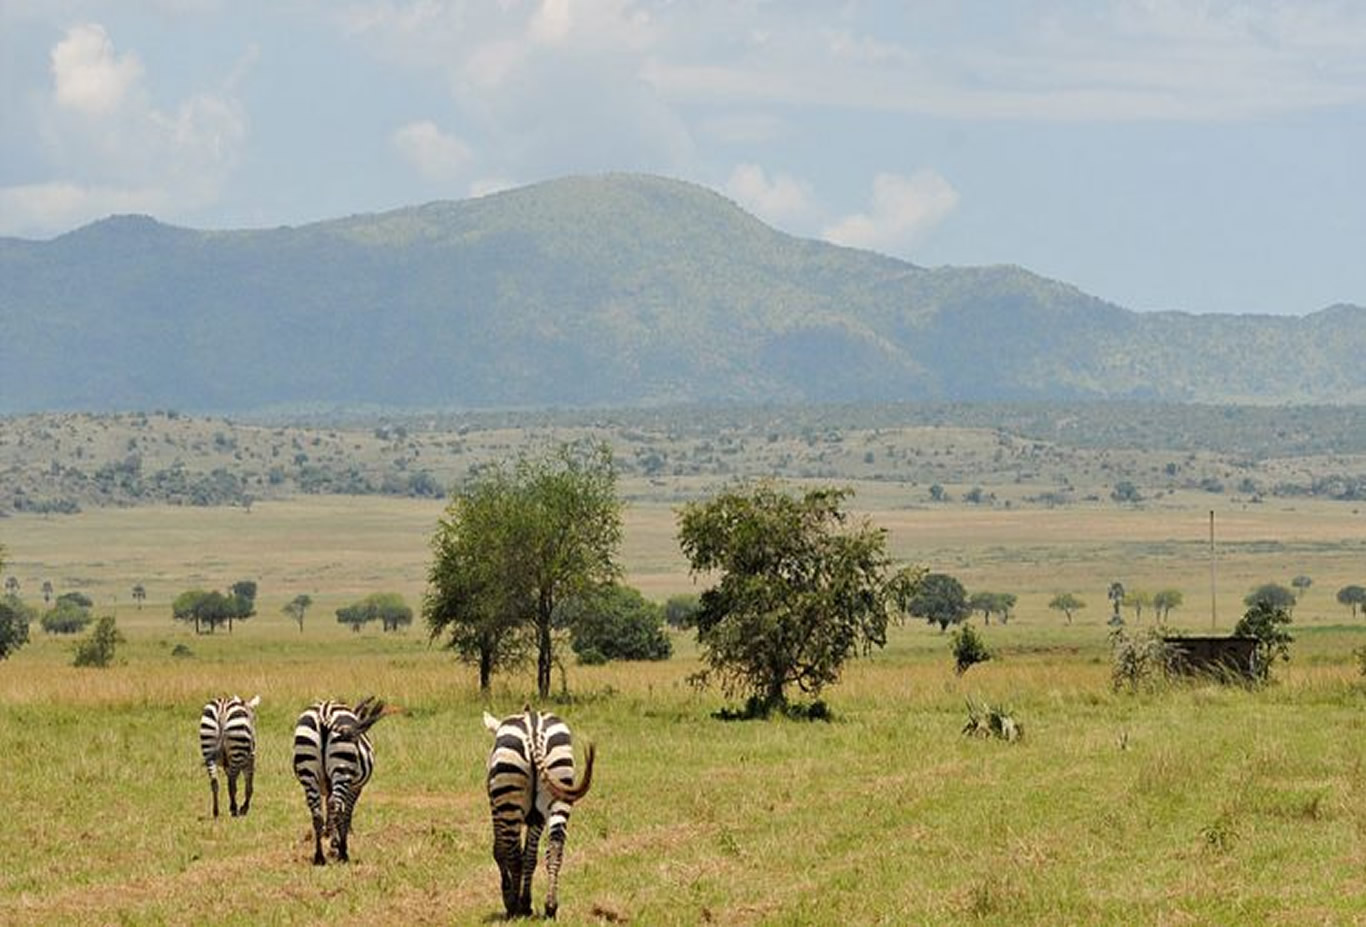 African Wilderness Safari in Kidepo Valley National Park Uganda